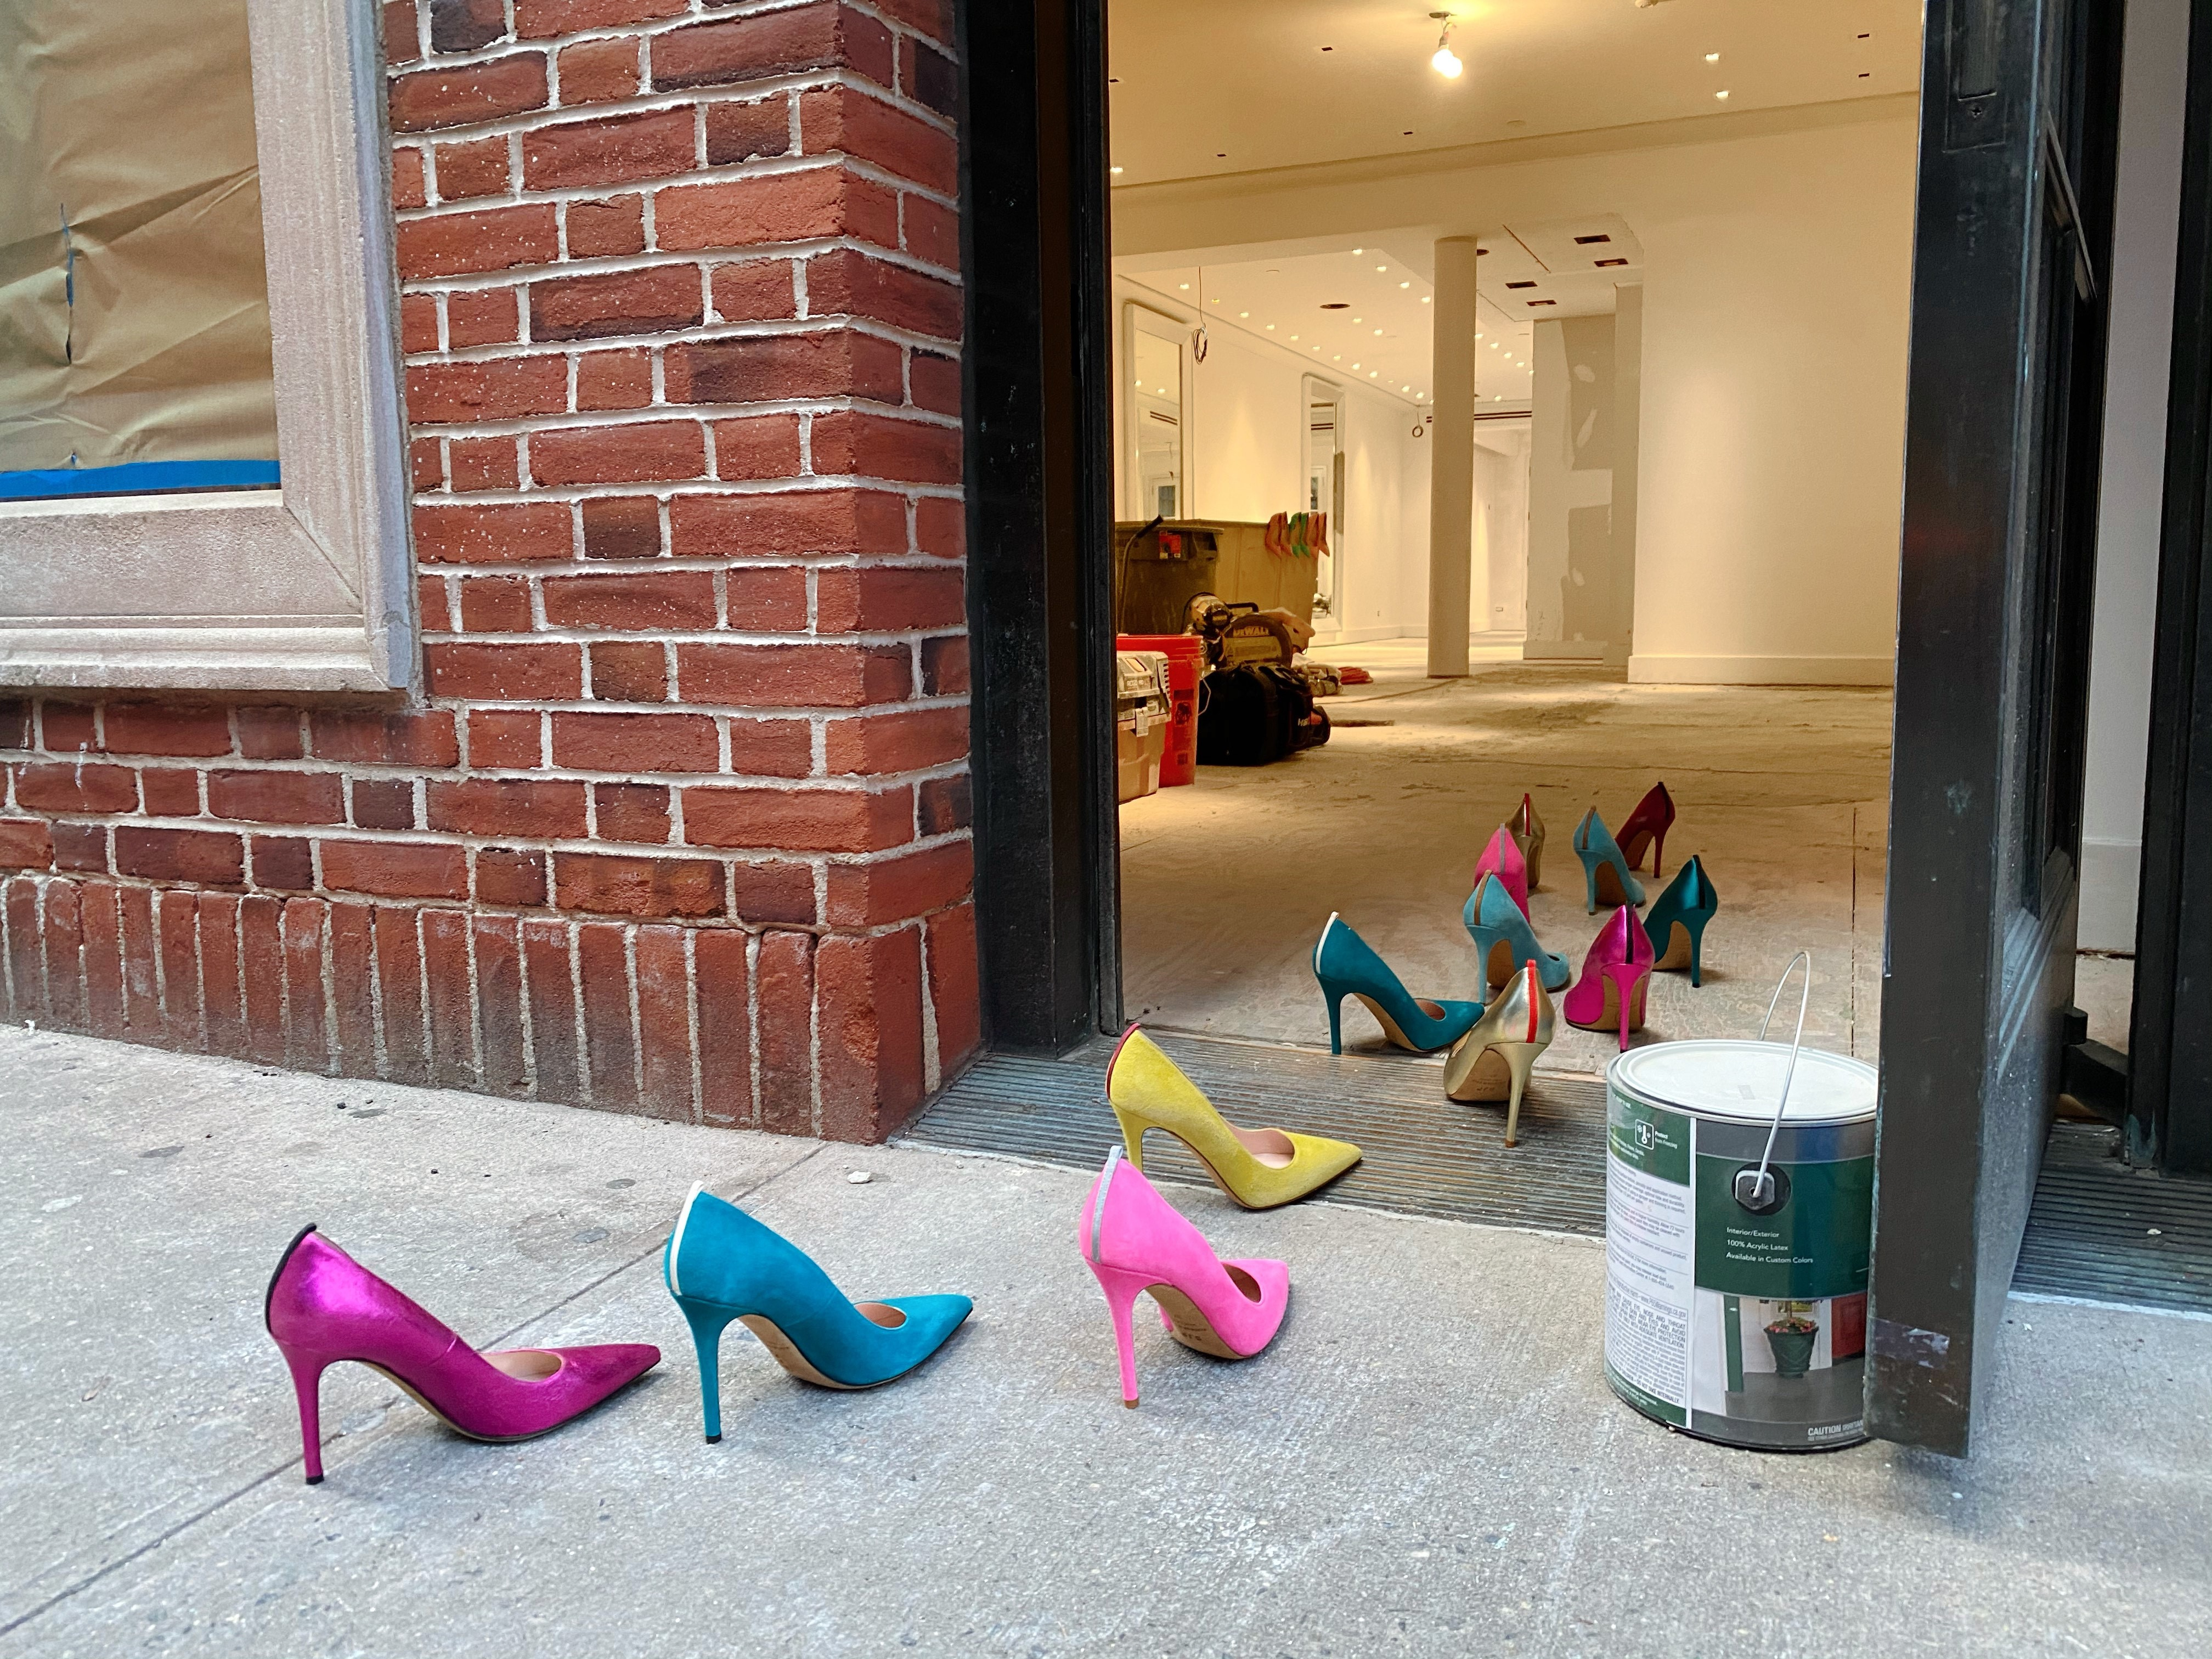 The SJP by Sarah Jessica Parker flagship will feature Parker's bestselling shoe styles.